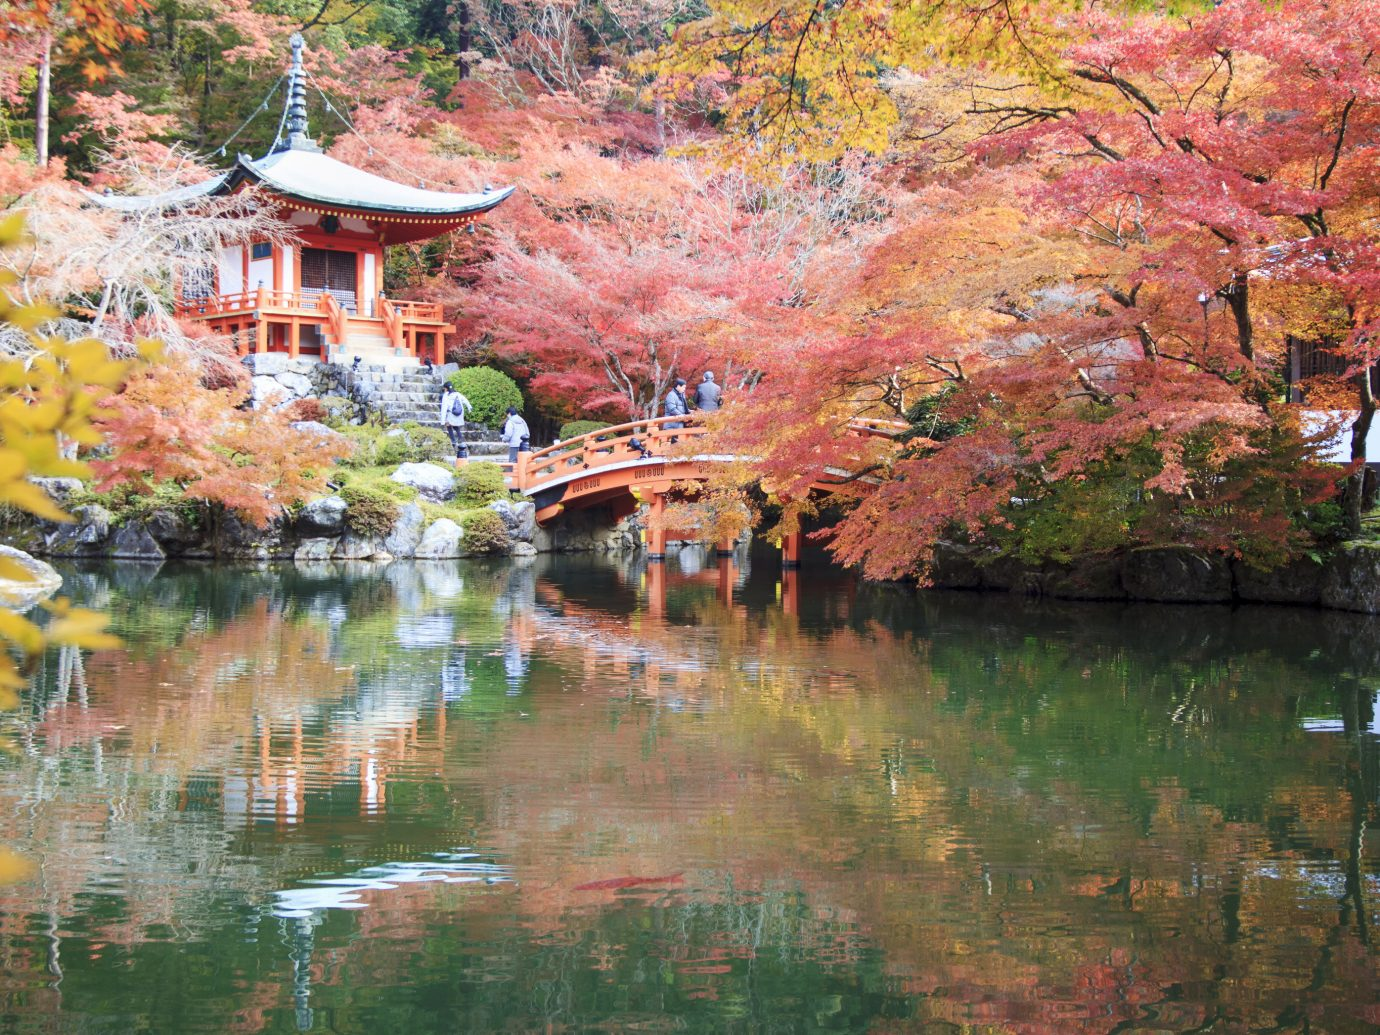 Trip Ideas outdoor tree Nature reflection water plant leaf autumn waterway pond pagoda spring maple tree flower cherry blossom tourist attraction watercourse landscape bank branch Lake temple surrounded area